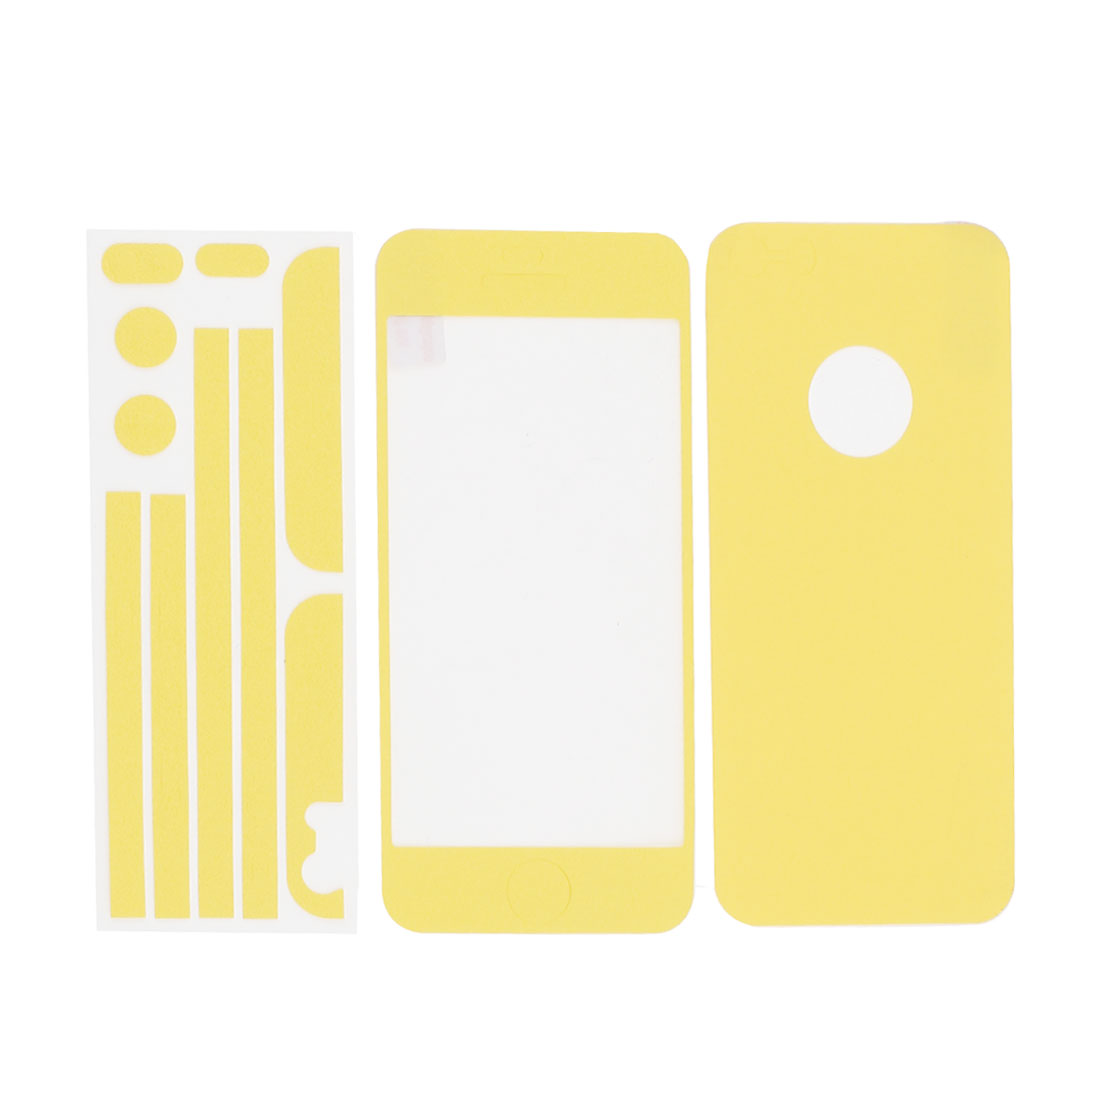 Yellow Self Adhesive Edge Wrap Decal Skin Sticker Set for Apple iPhone 5 5G 5th